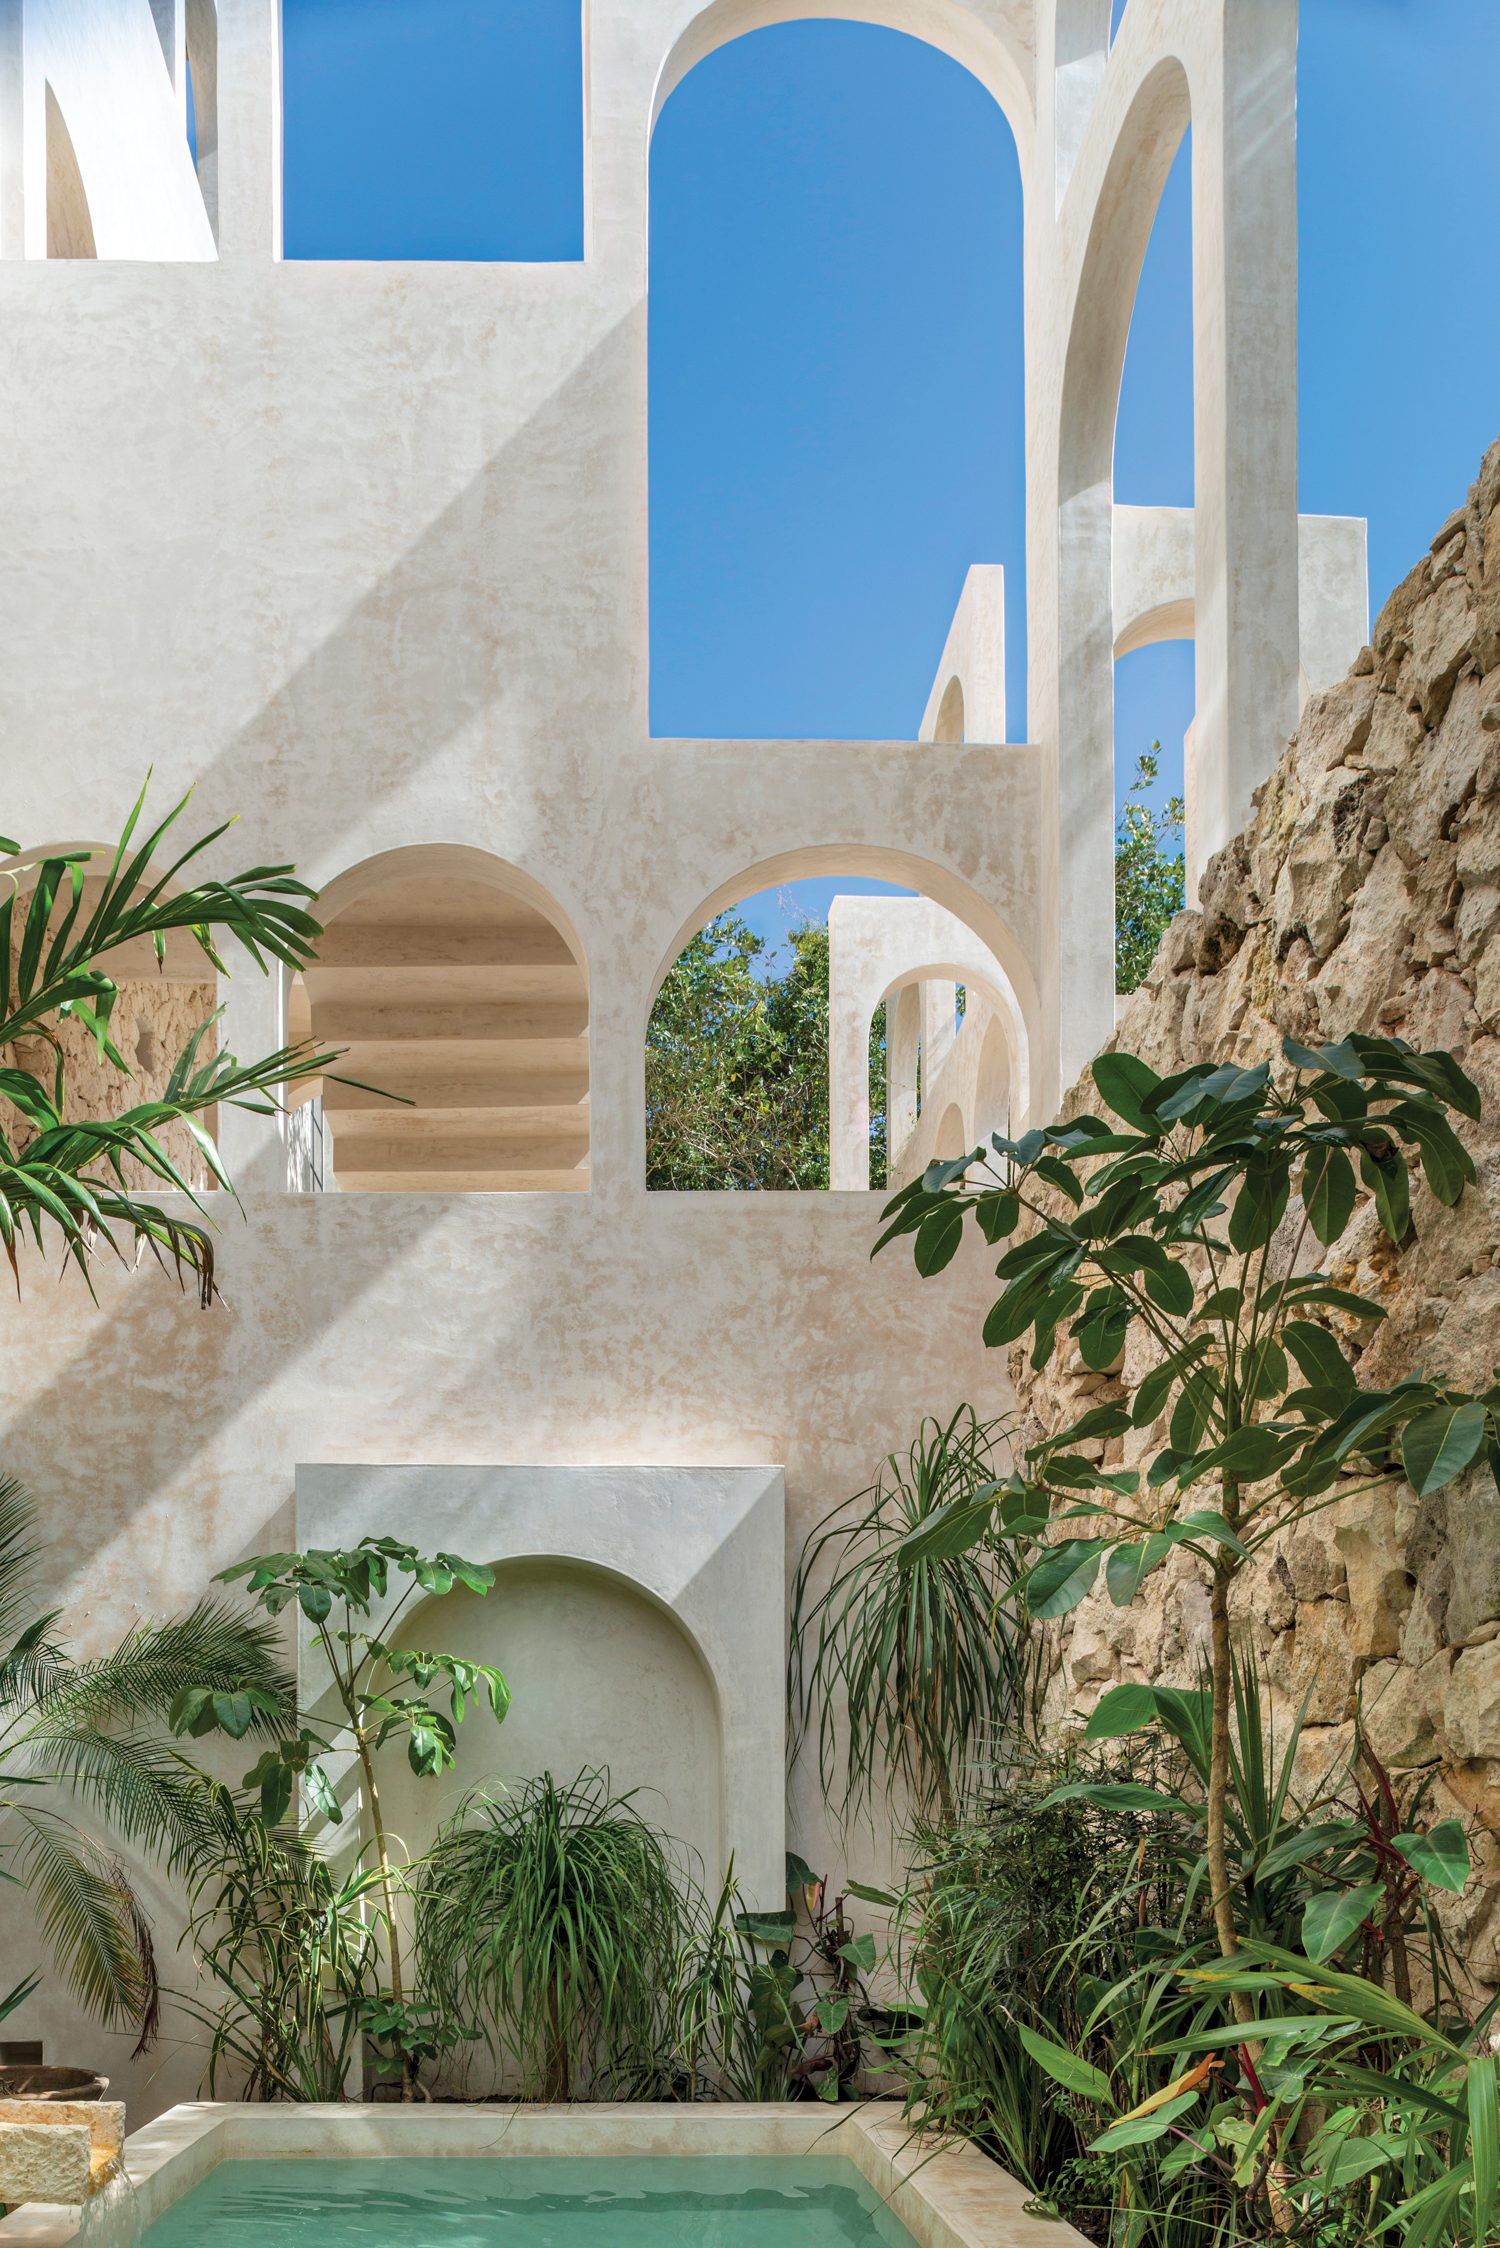 Nodding to classical architecture, a composition of arches distinguishes the four-story condominium building's facade.